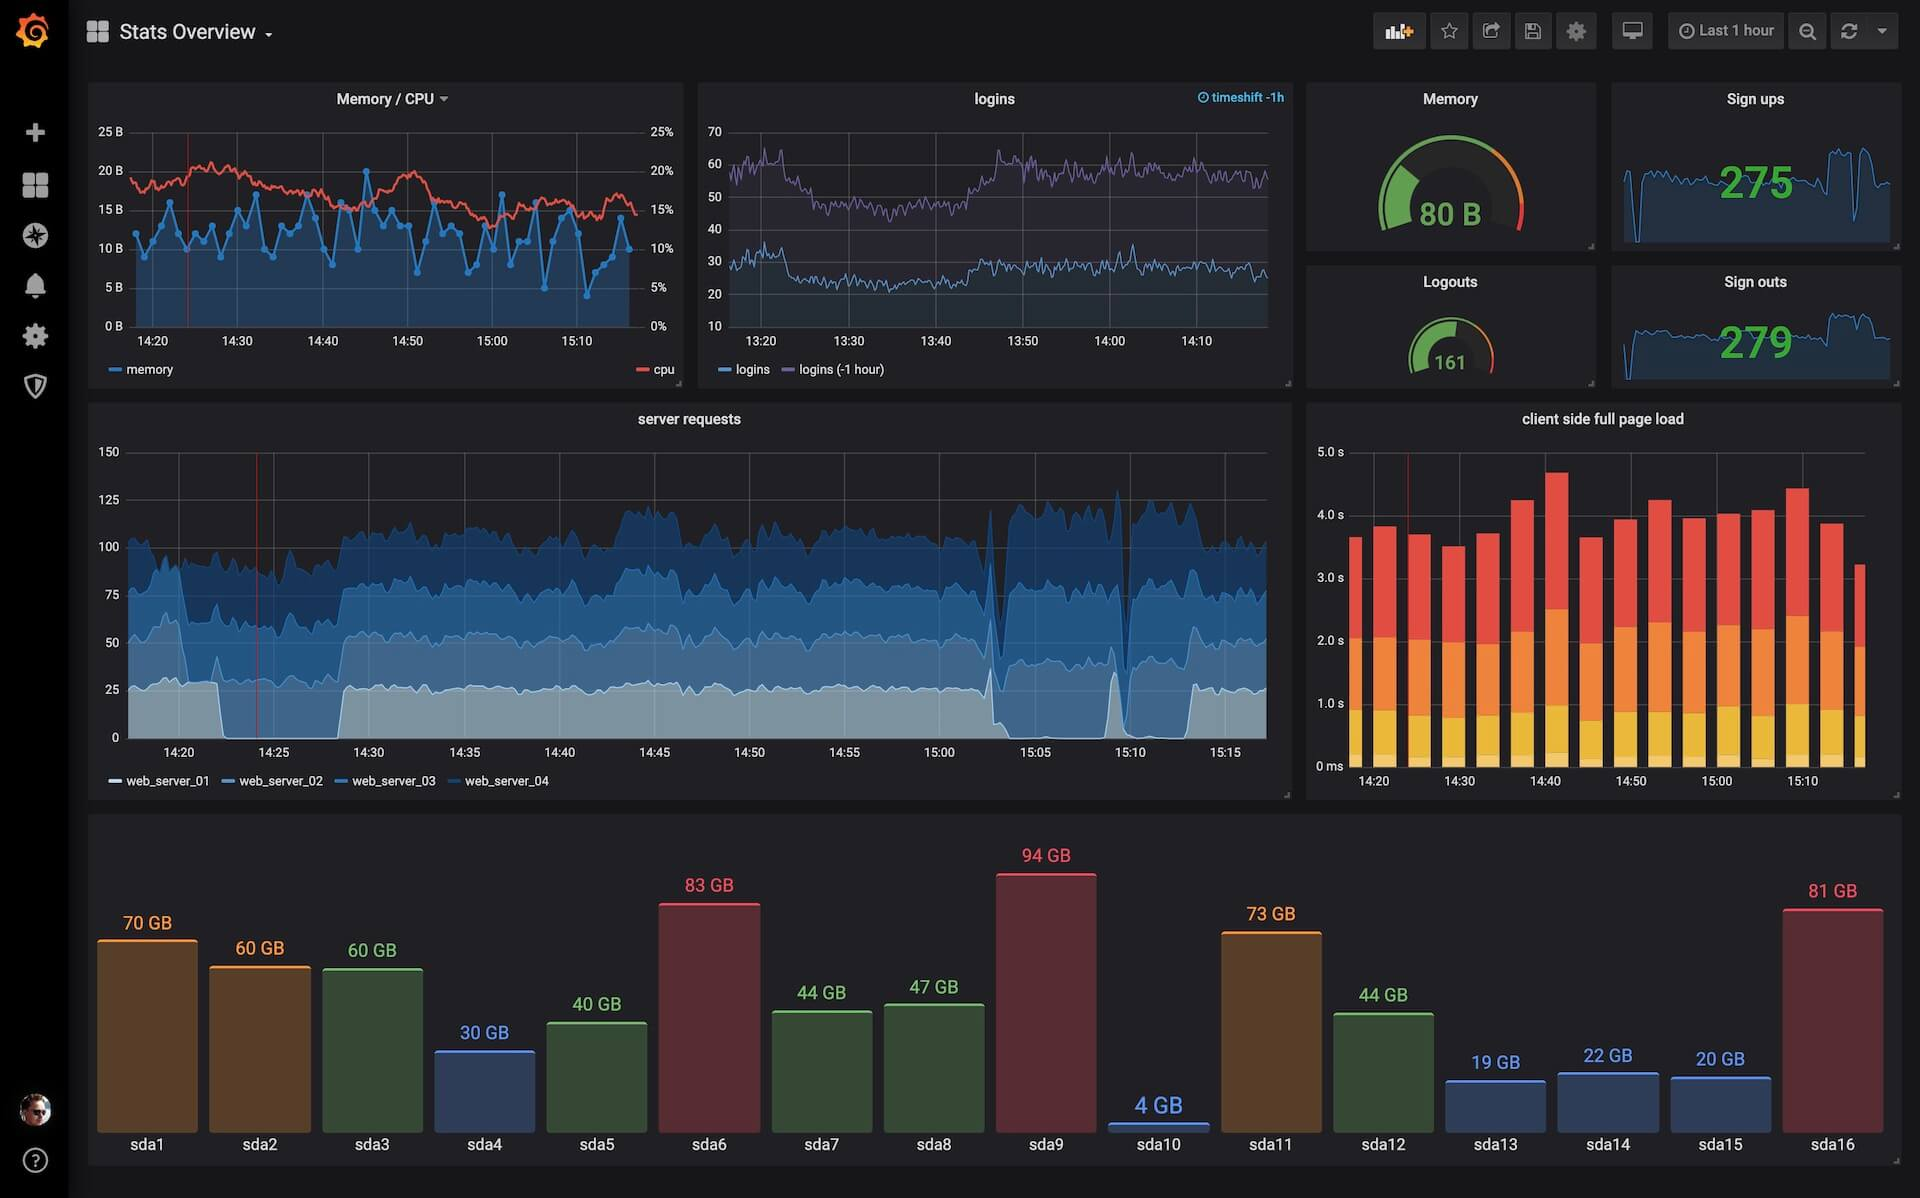 Grafana Data Visualization of Open Source IT Monitoring